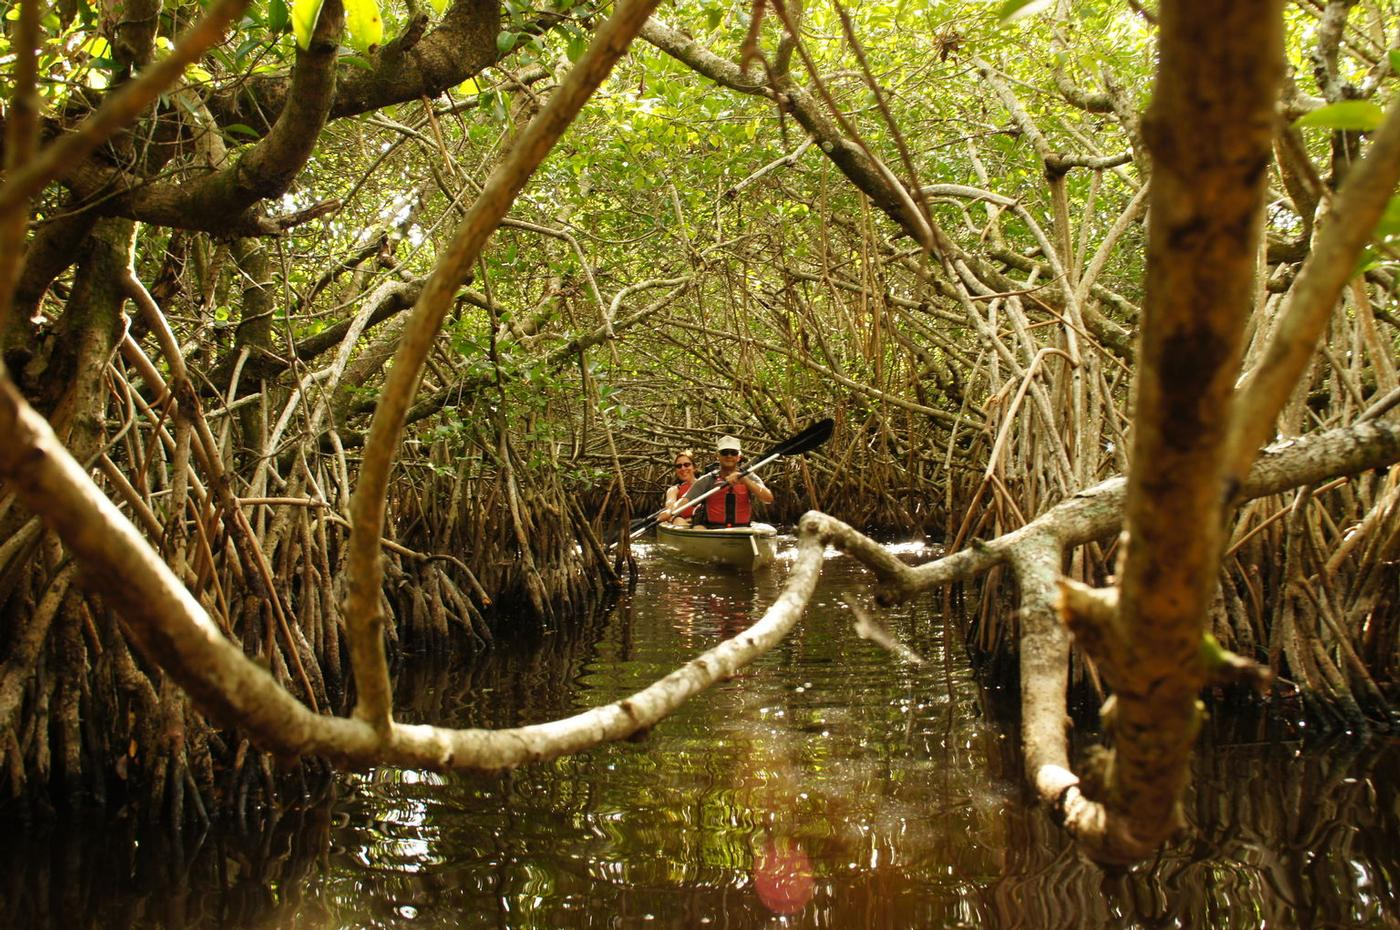 Making our way through the mangrove forest